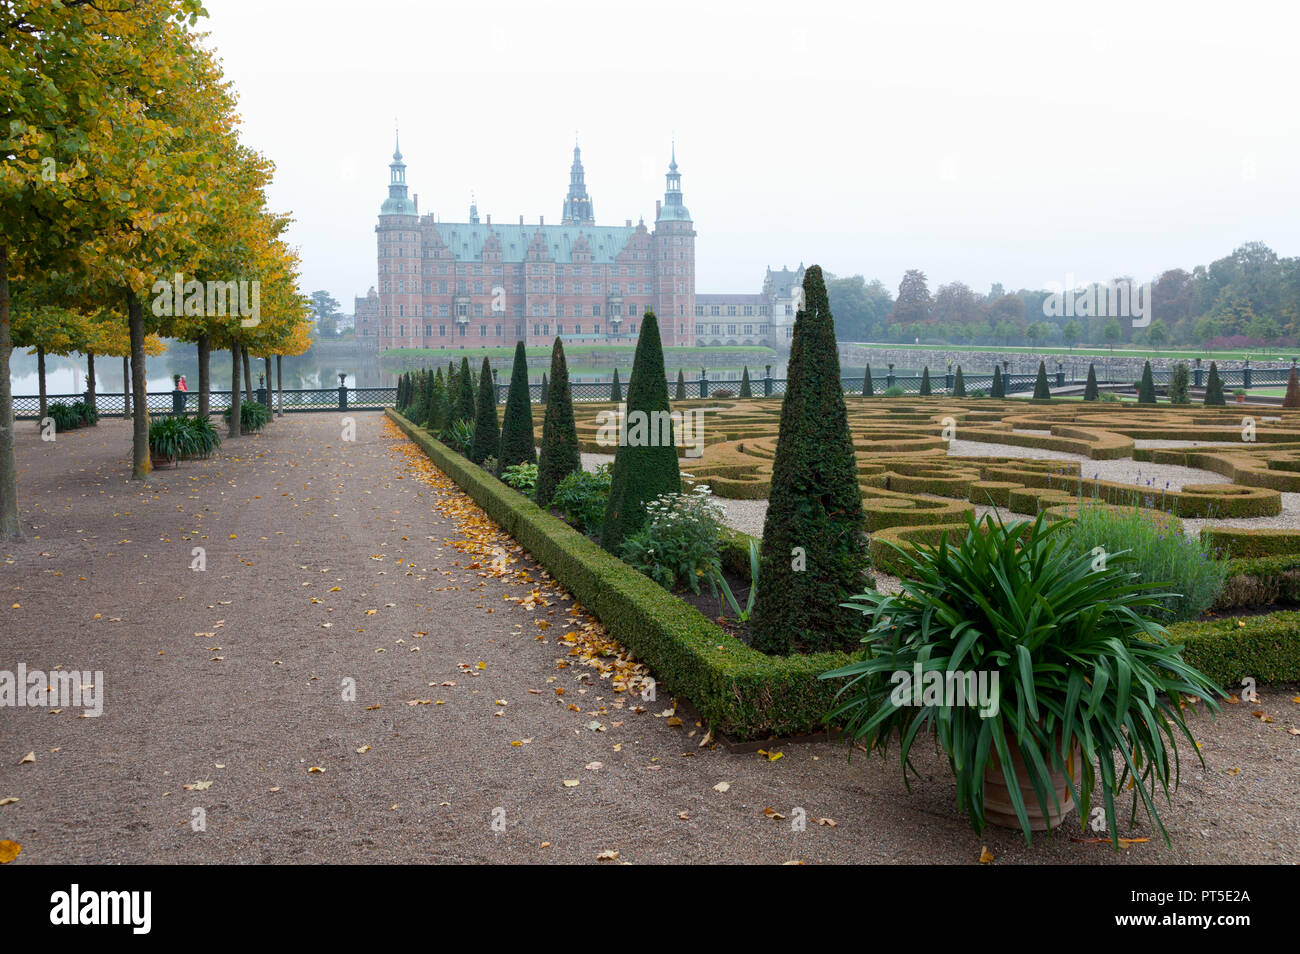 Frederiksborg Castle and the Baroque Garden in Hillerød, North Sealand, Denmark, on a foggy autumn day Stock Photo